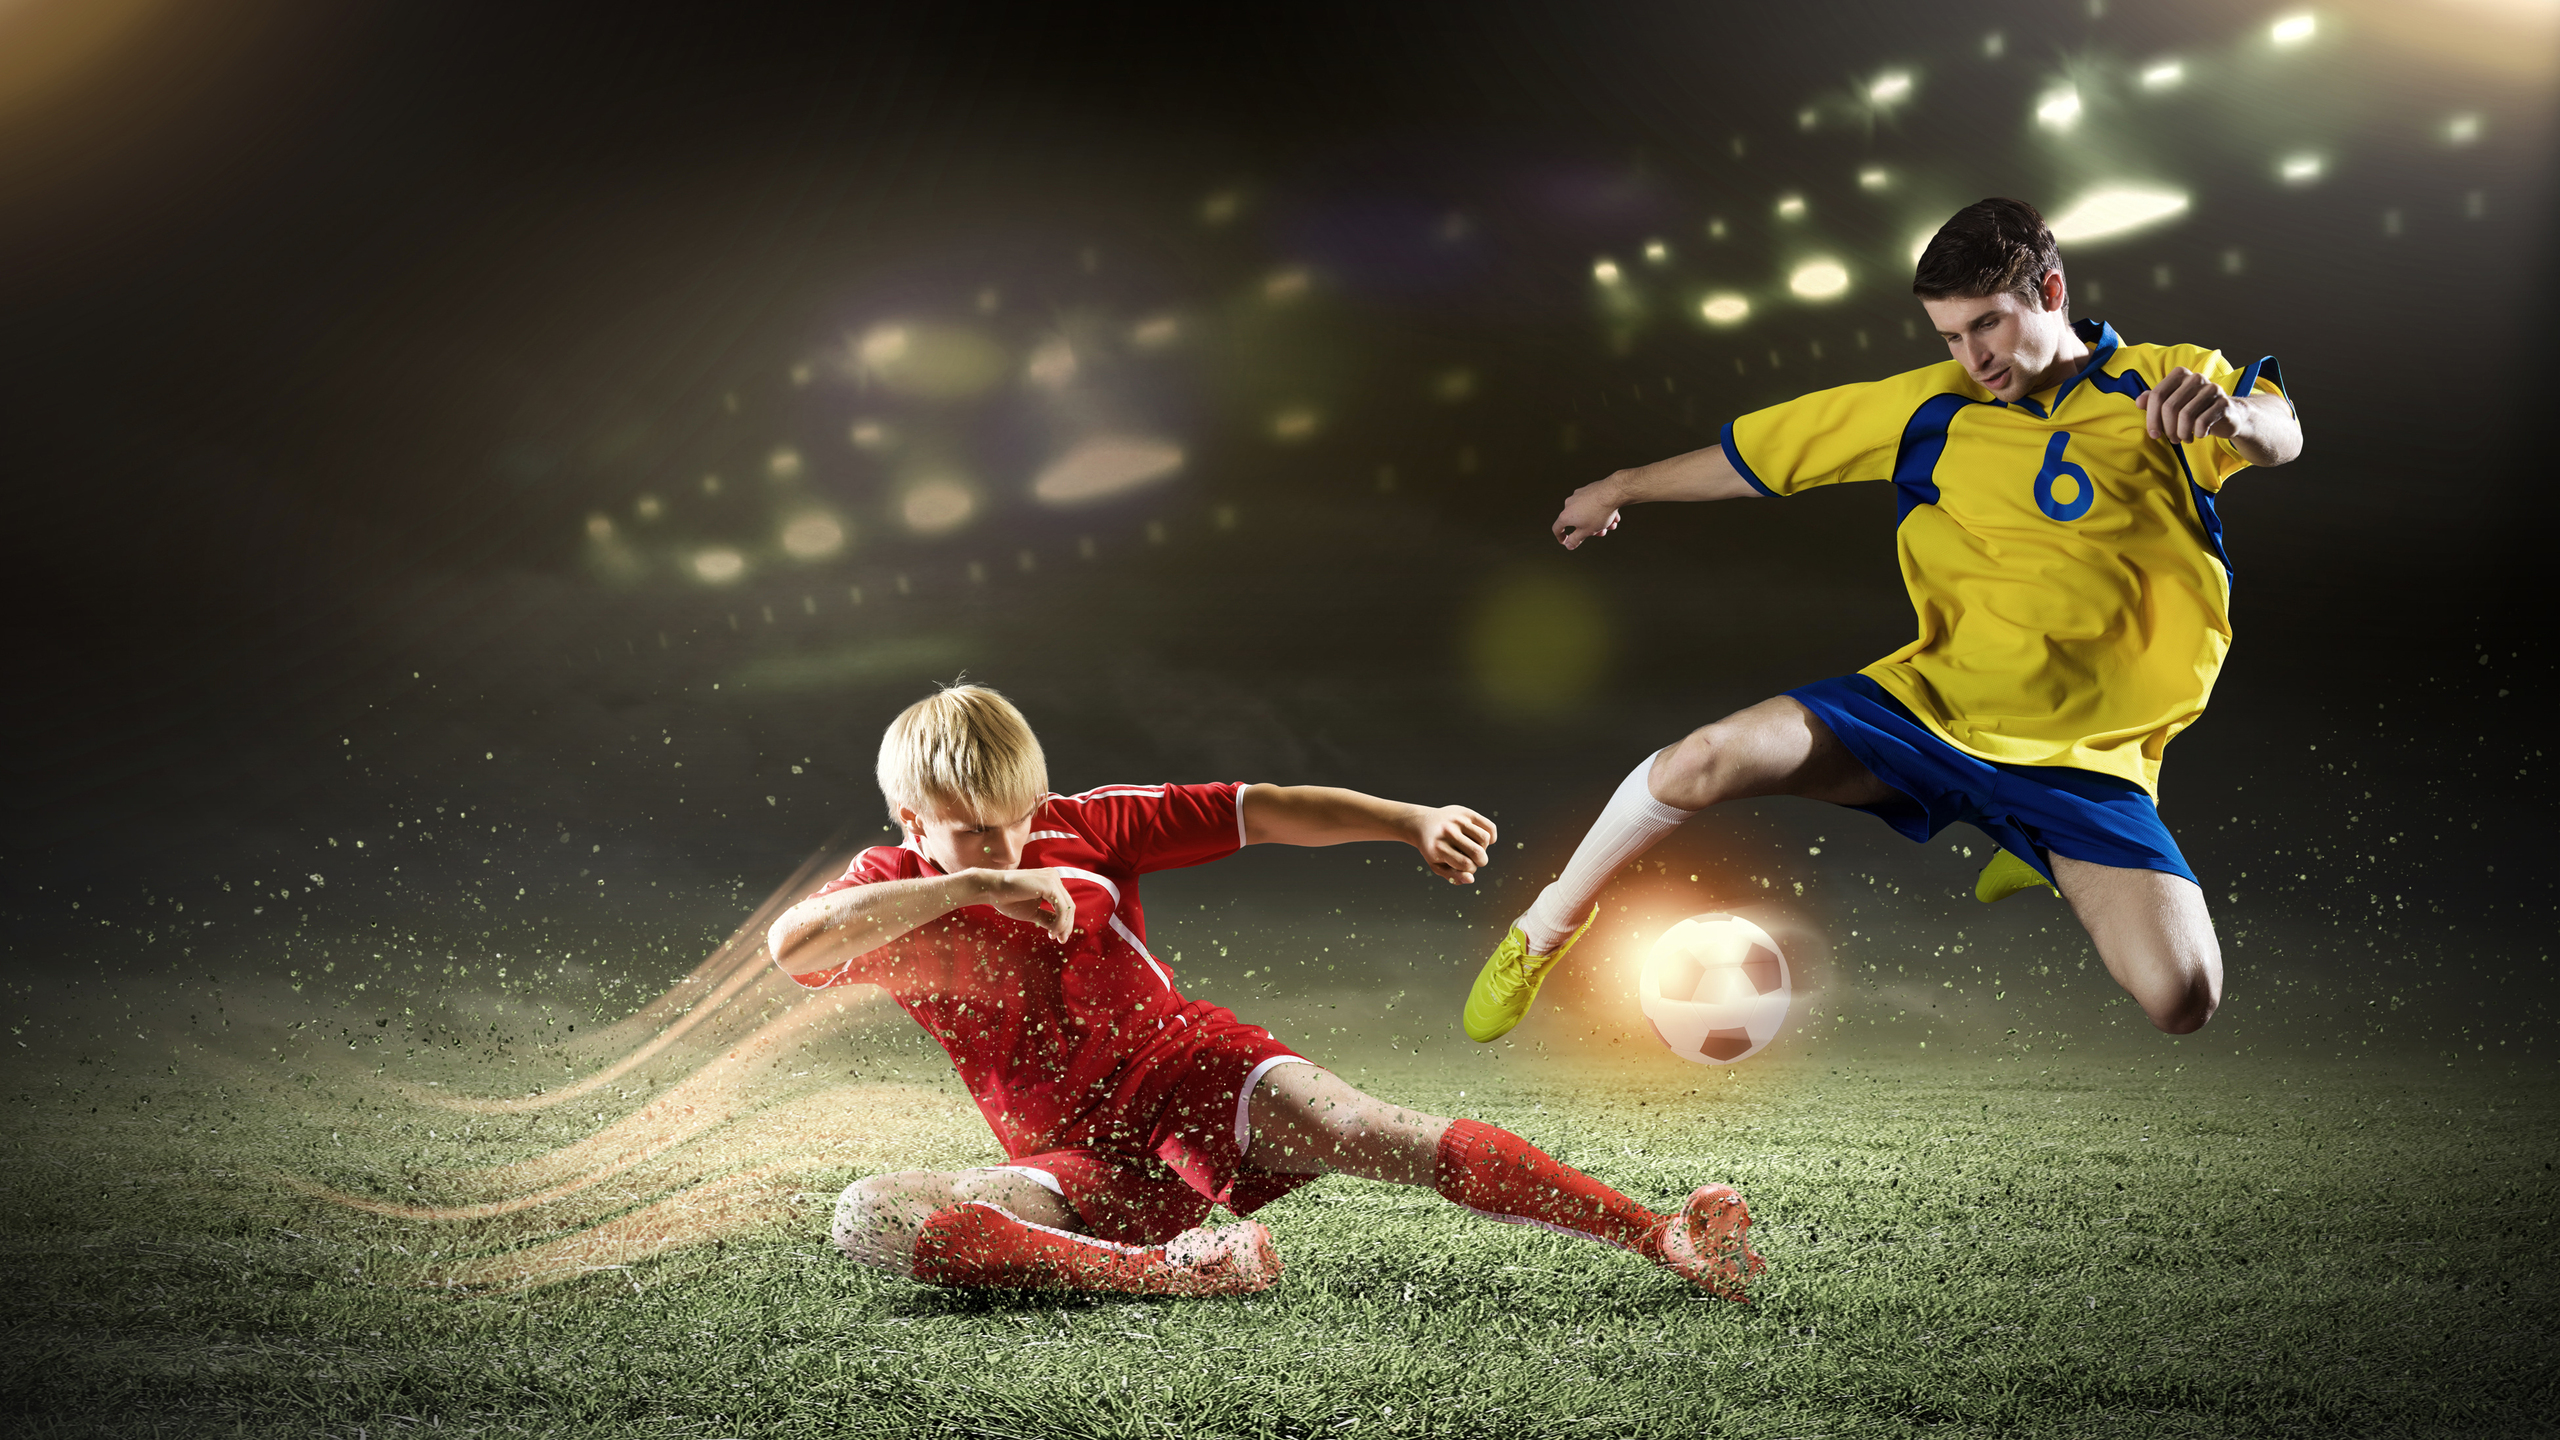 2560x1440 Soccer Players Football 4k 1440p Resolution Hd 4k Wallpapers Images Backgrounds Photos And Pictures